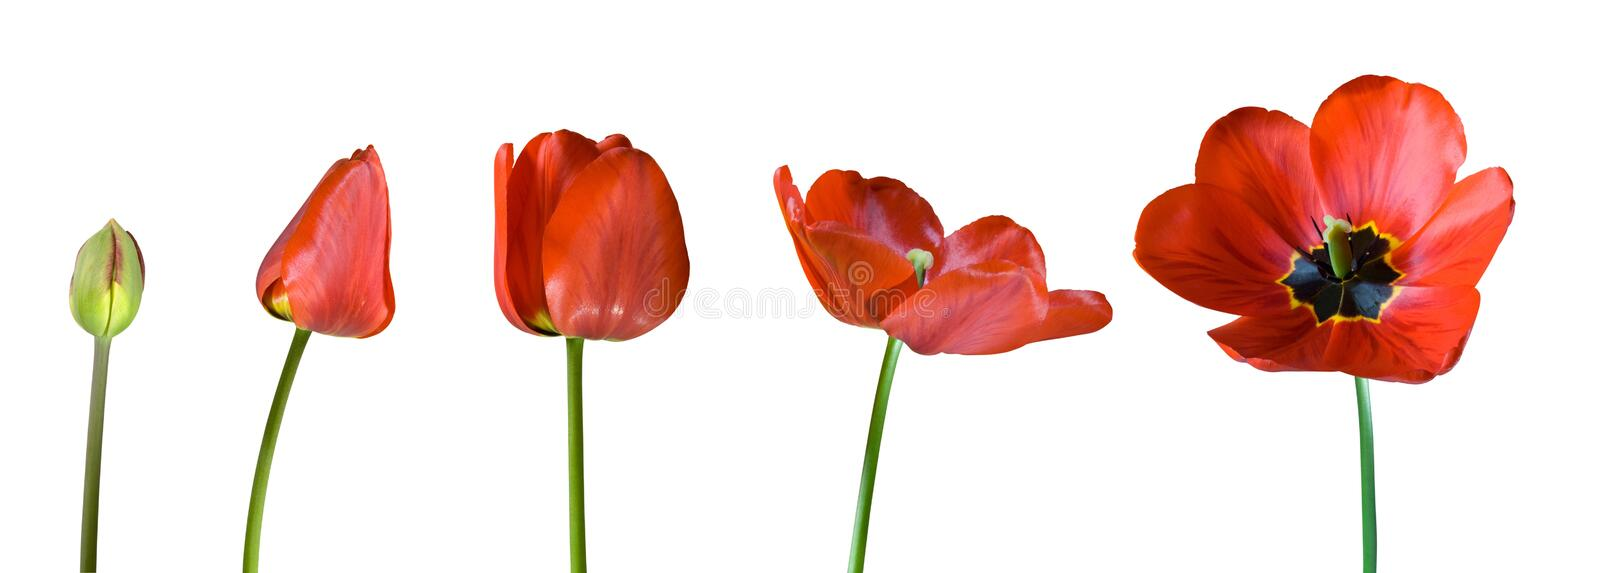 Tulip Stages Stock Image